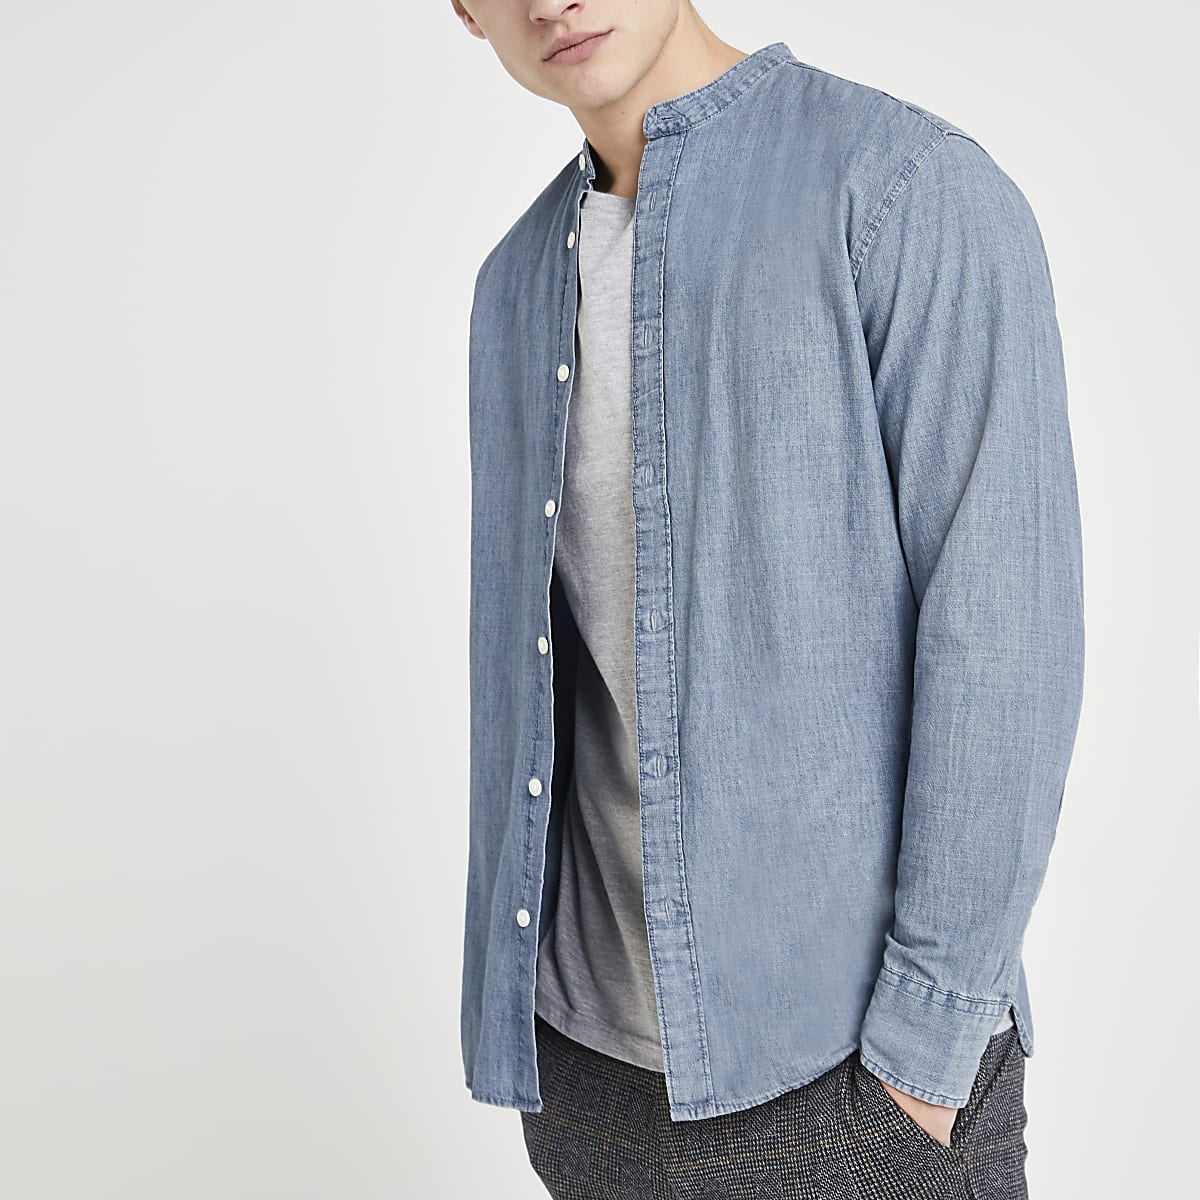 Selected Homme blue long sleeve shirt